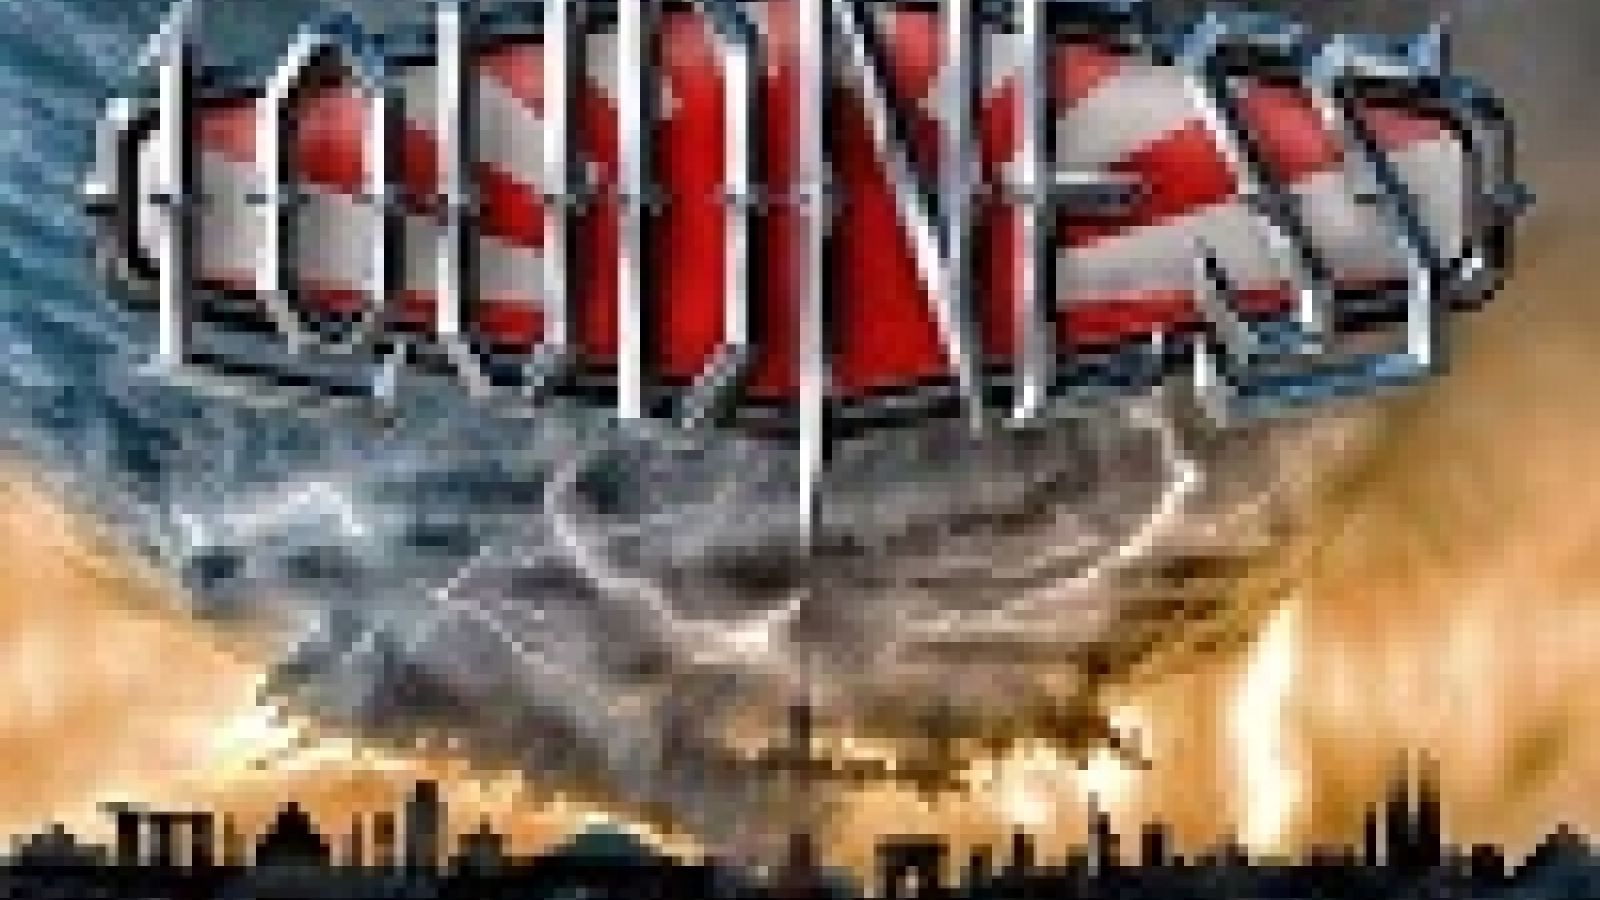 LOUDNESS - RISE TO GLORY © LOUDNESS. All Rights Reserved.